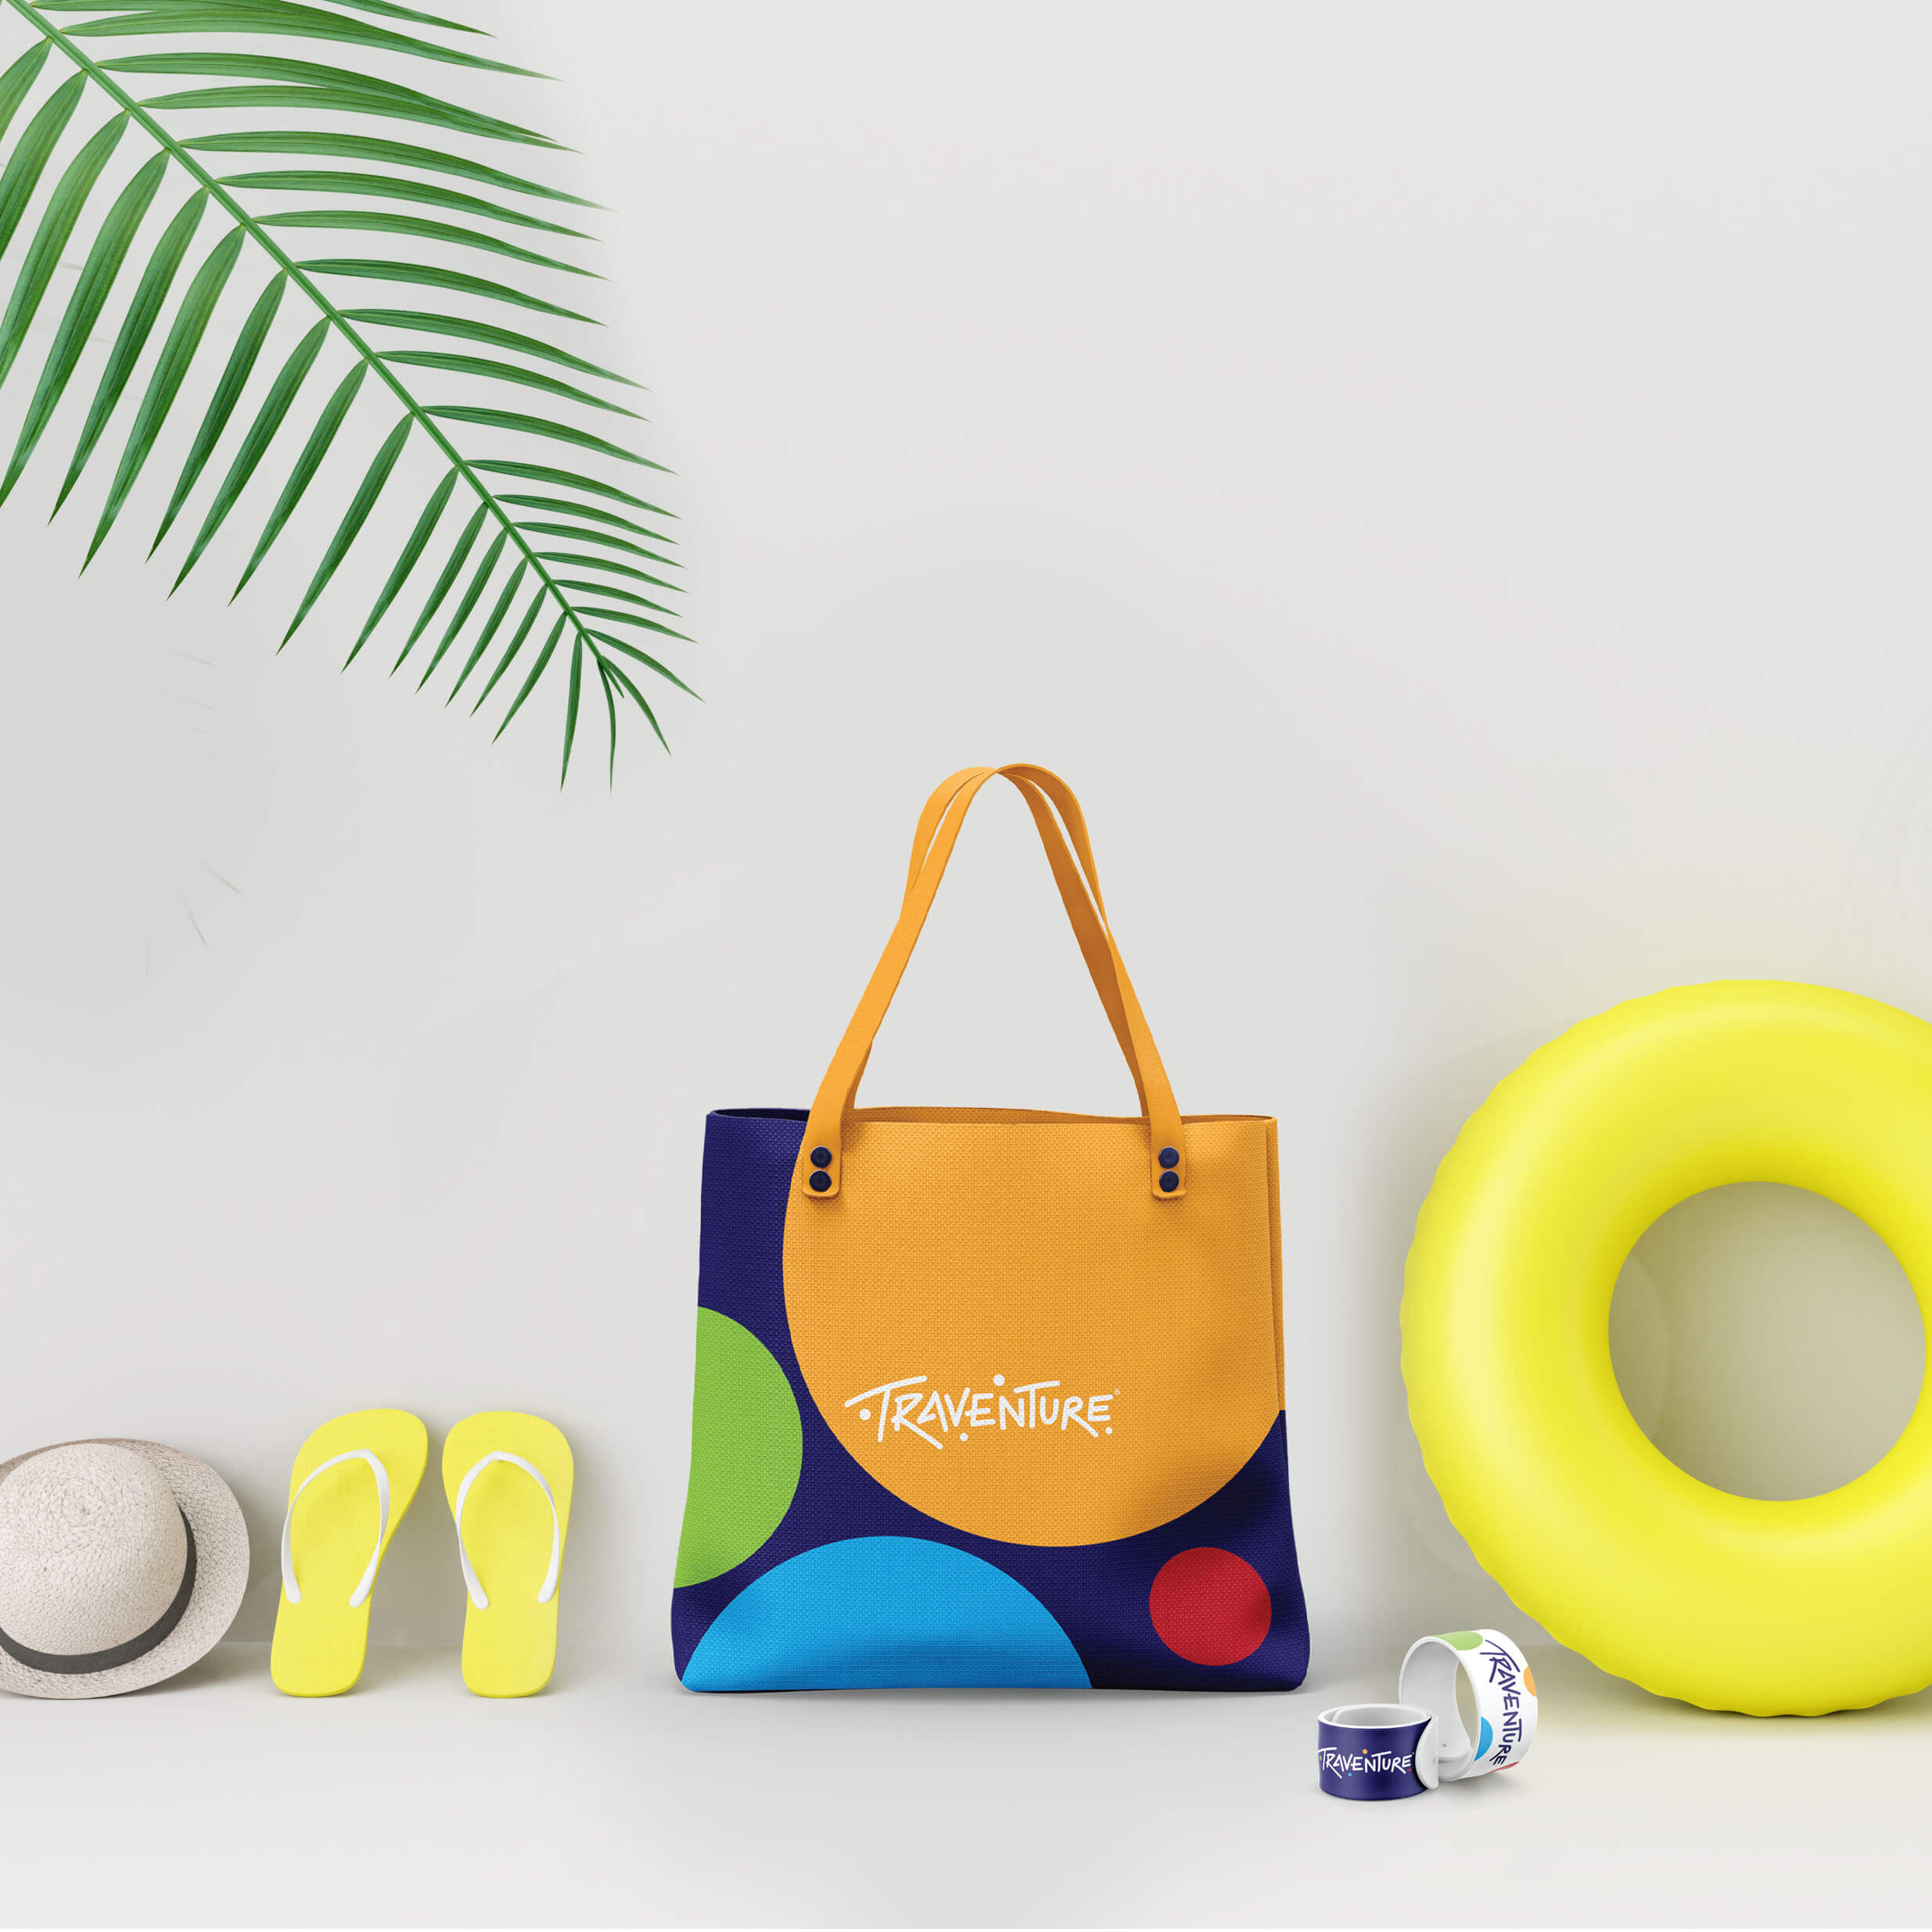 White,Suitcase,With,Beach,Accessories,And,Tropical,Palm,Leaves,On